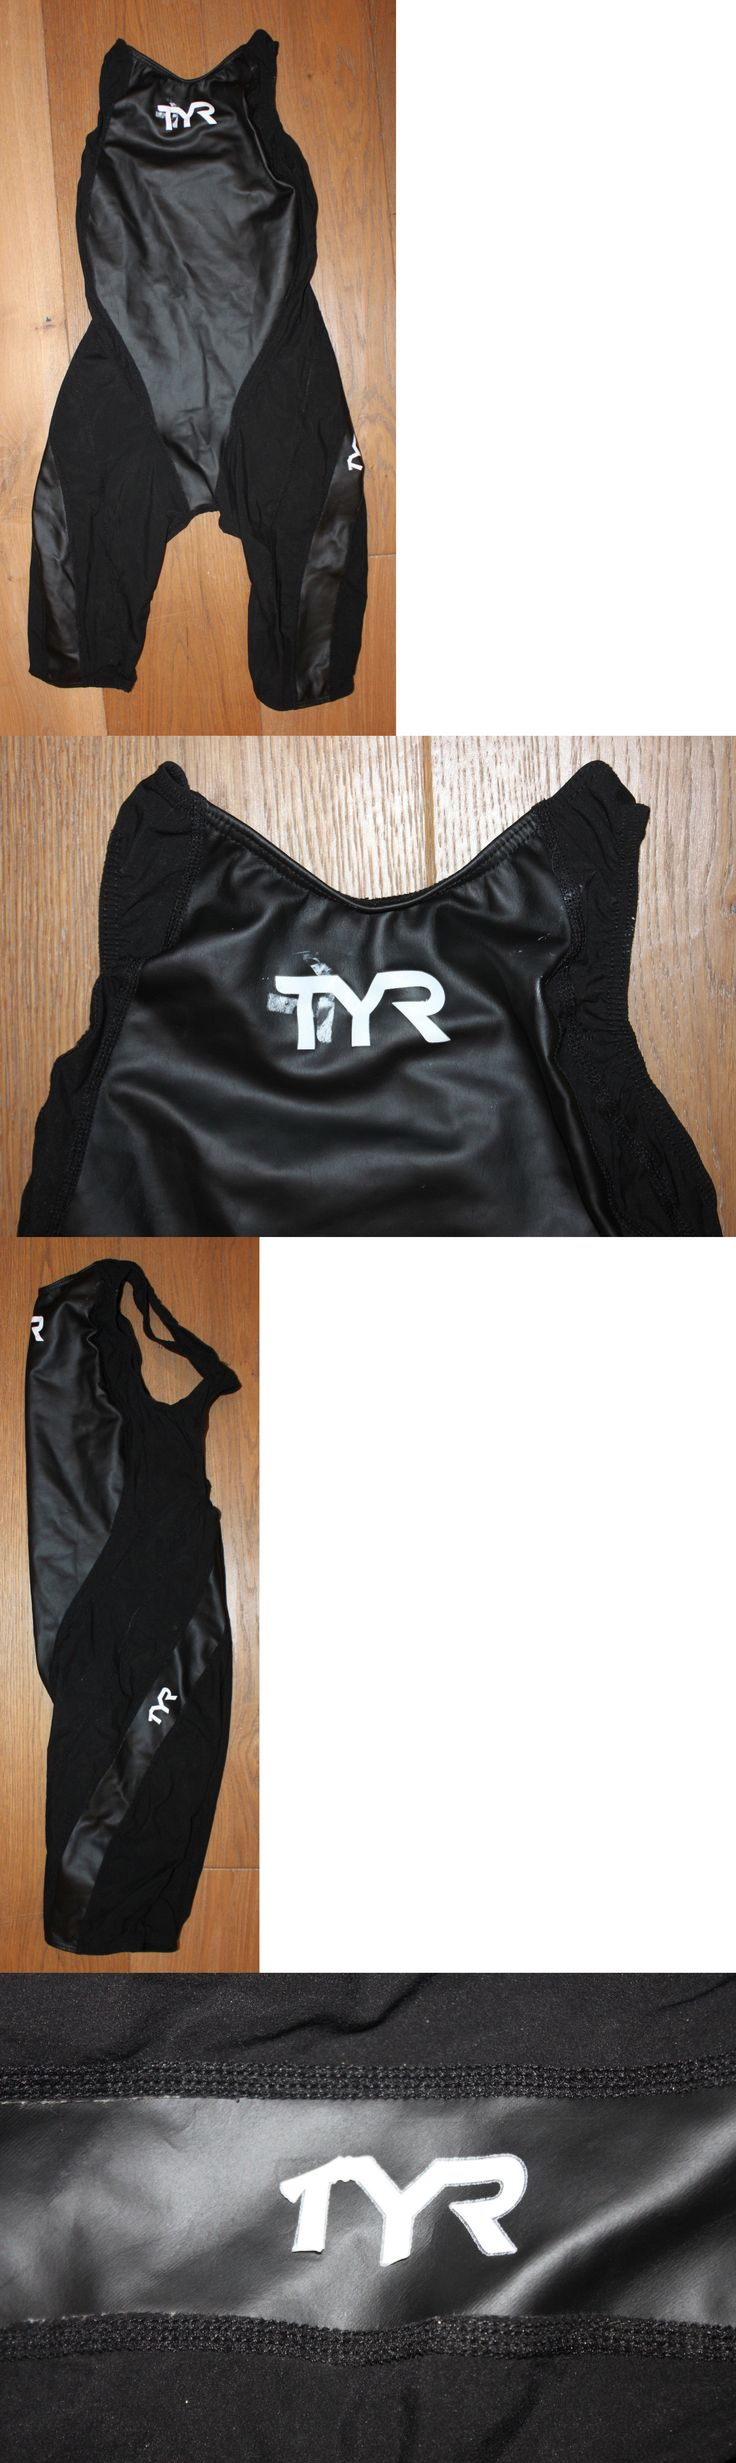 Women 140051: New Women S Tyr Black Tracer Rise Short John Aero Back Tri Suit - Usa Made - 30 -> BUY IT NOW ONLY: $54.95 on eBay!